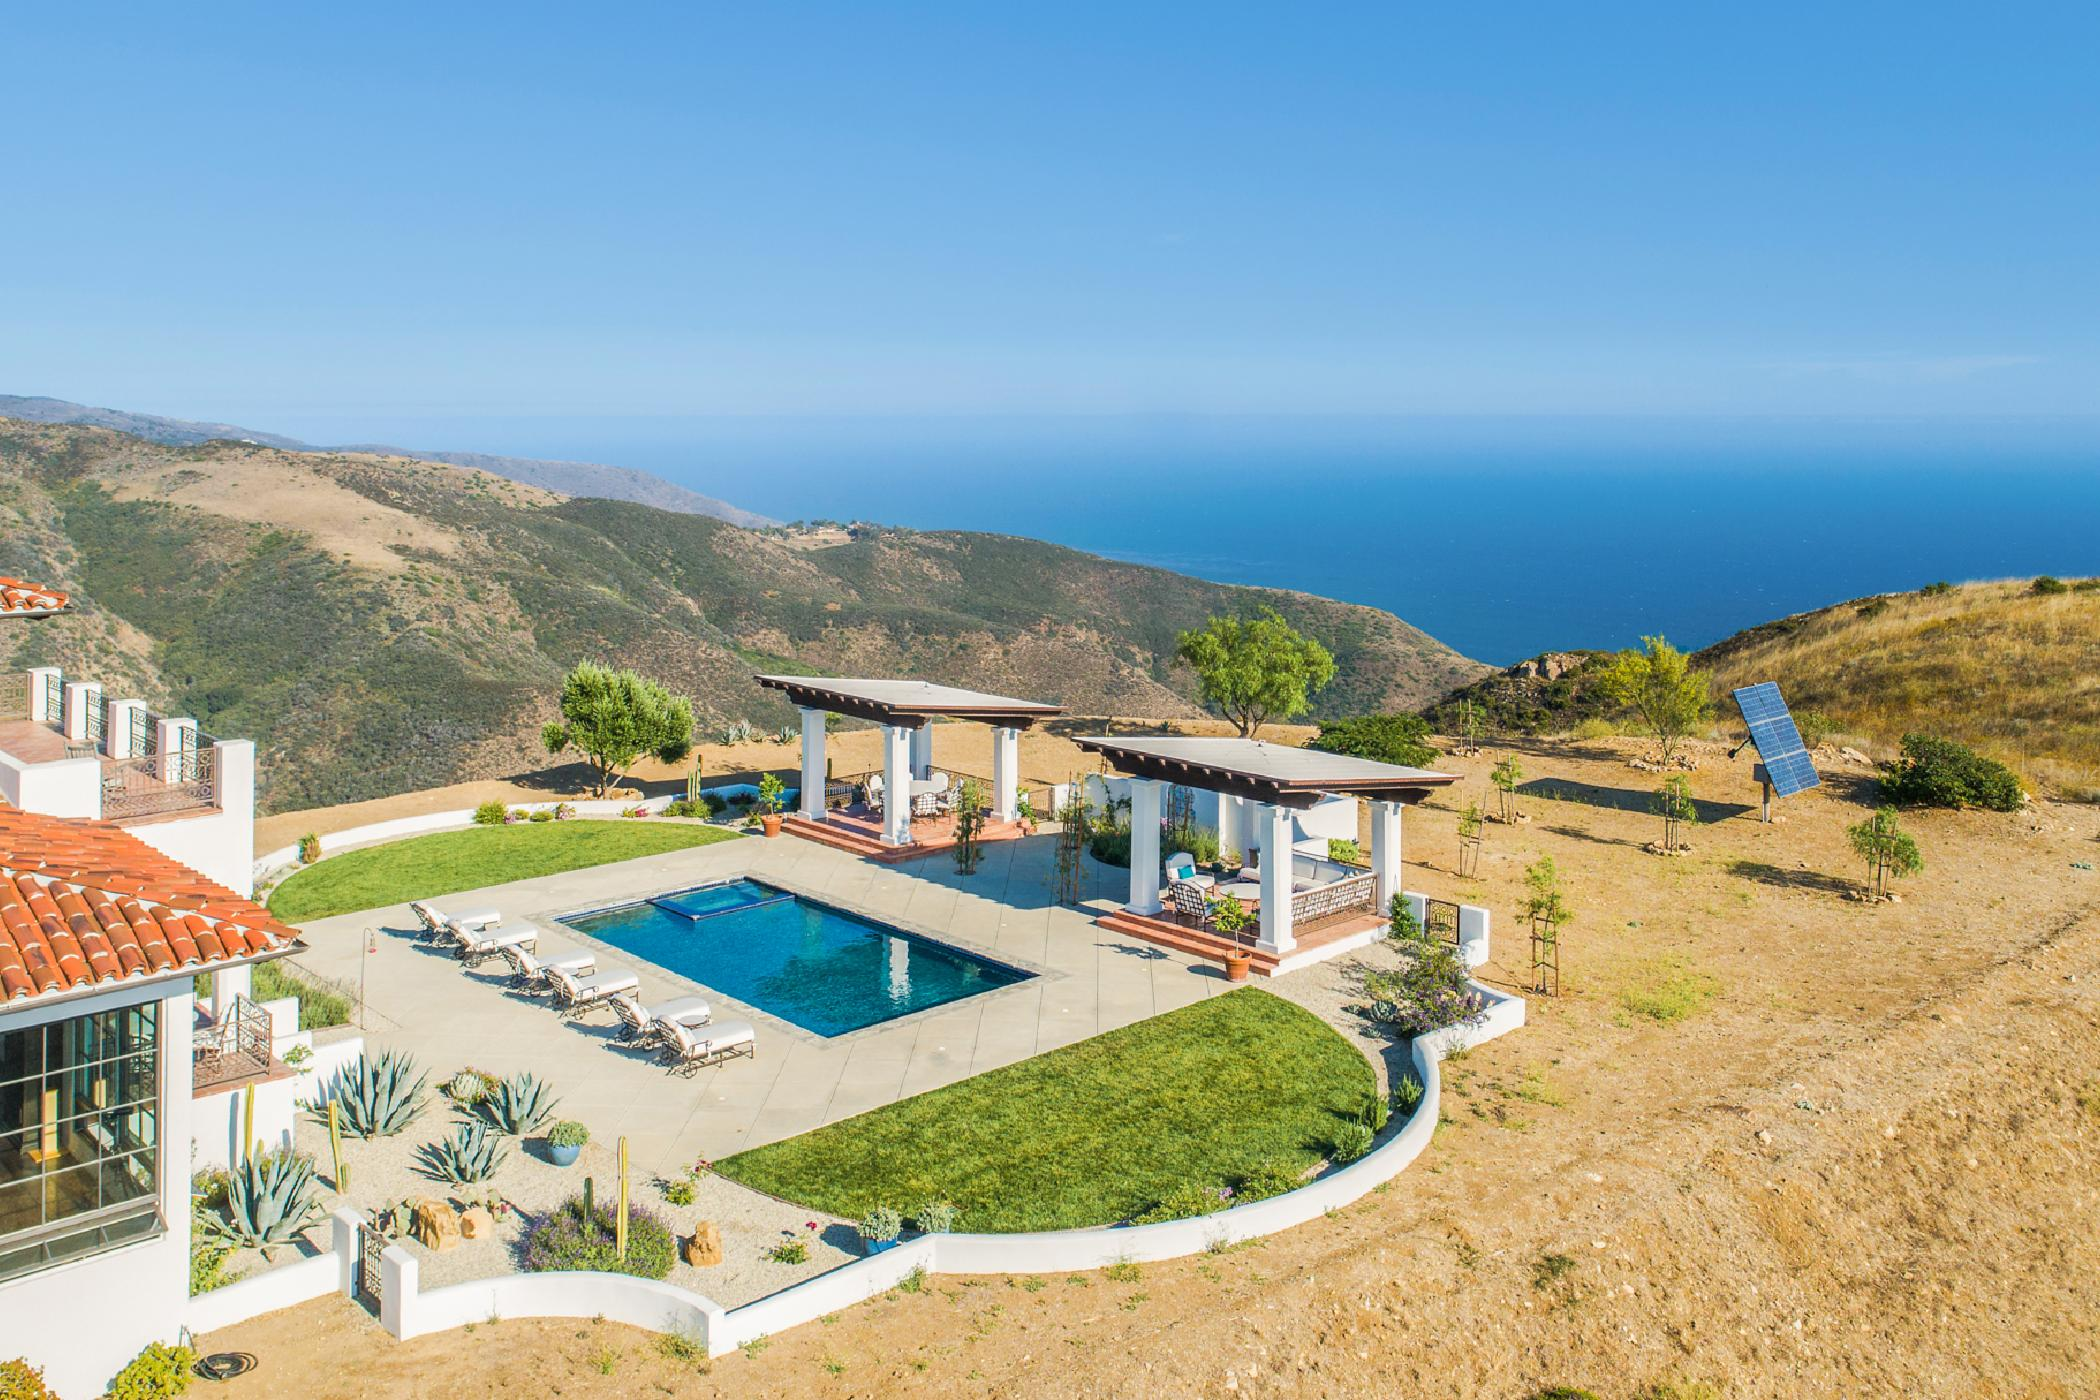 Malibu Luxury View Villa